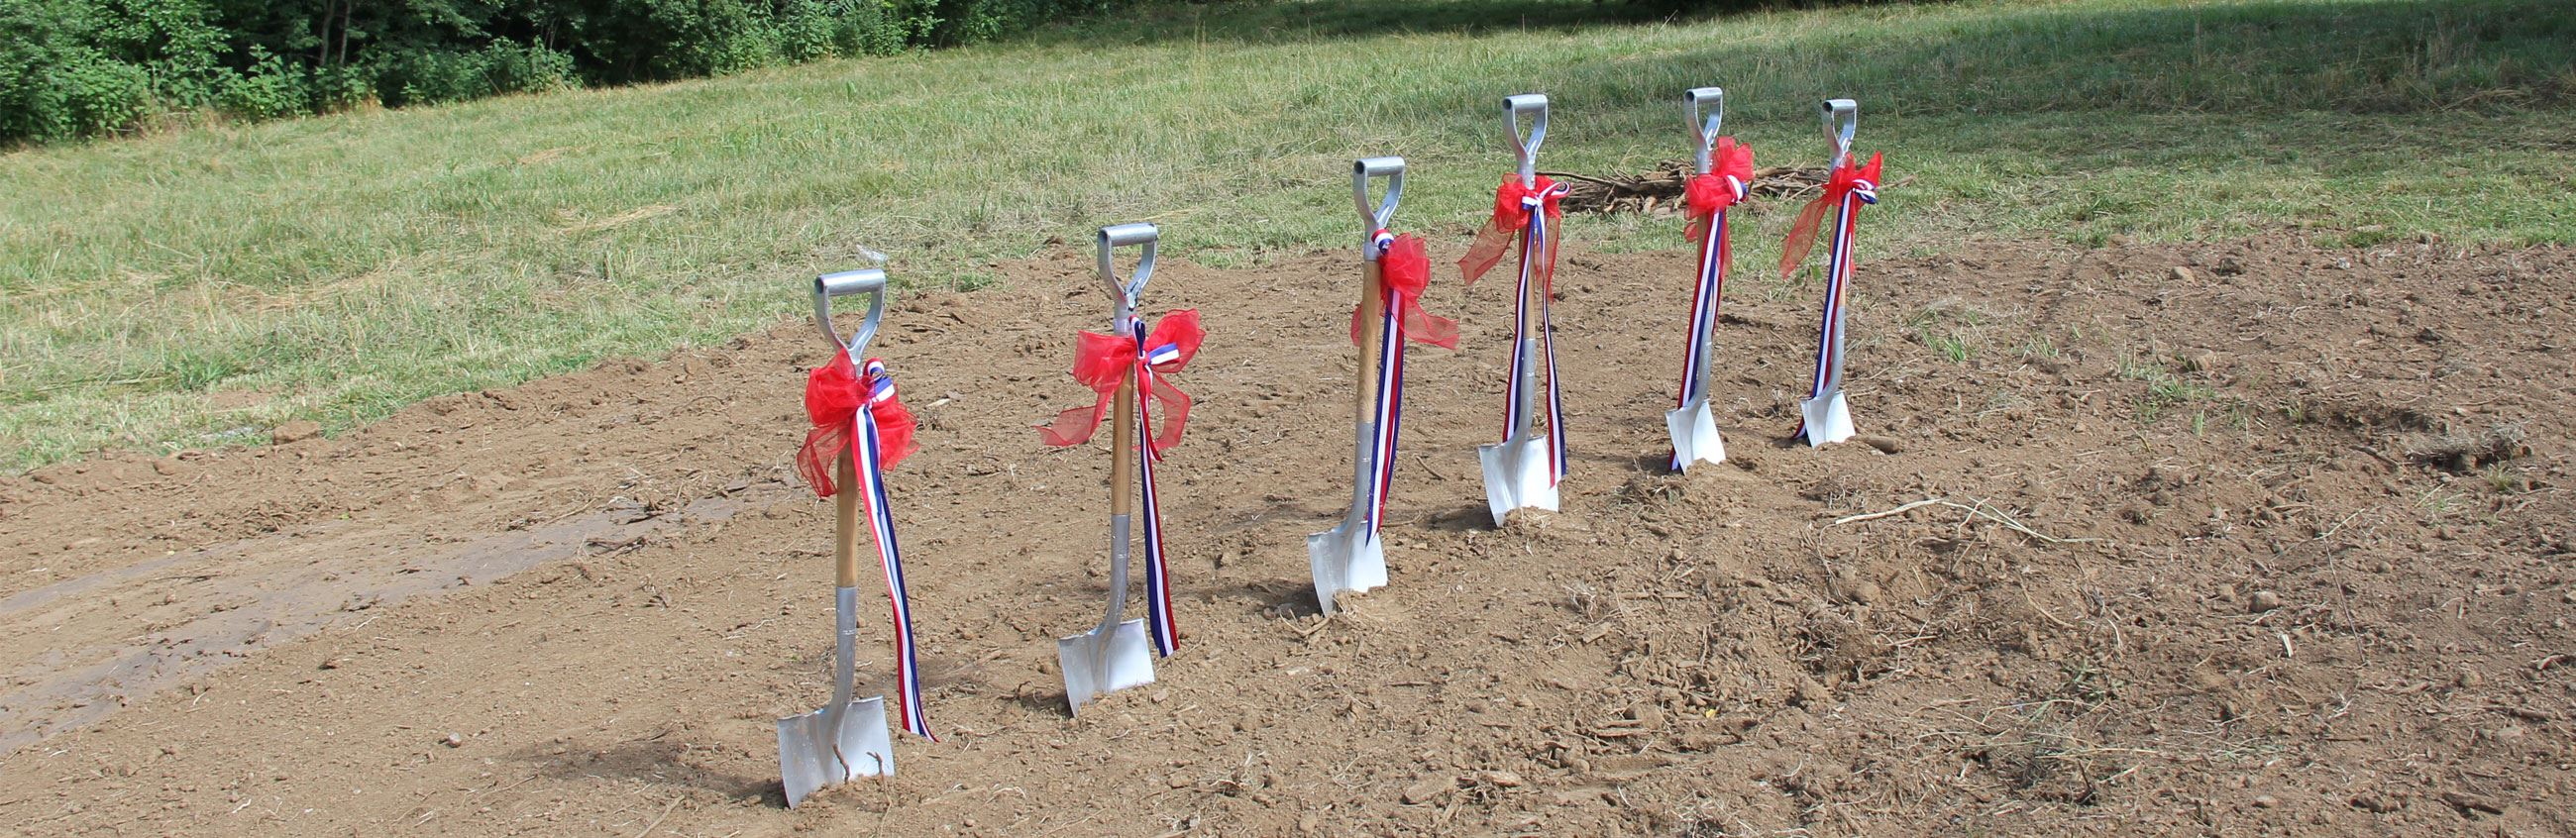 Groundbreaking shovels stuck in the dirt